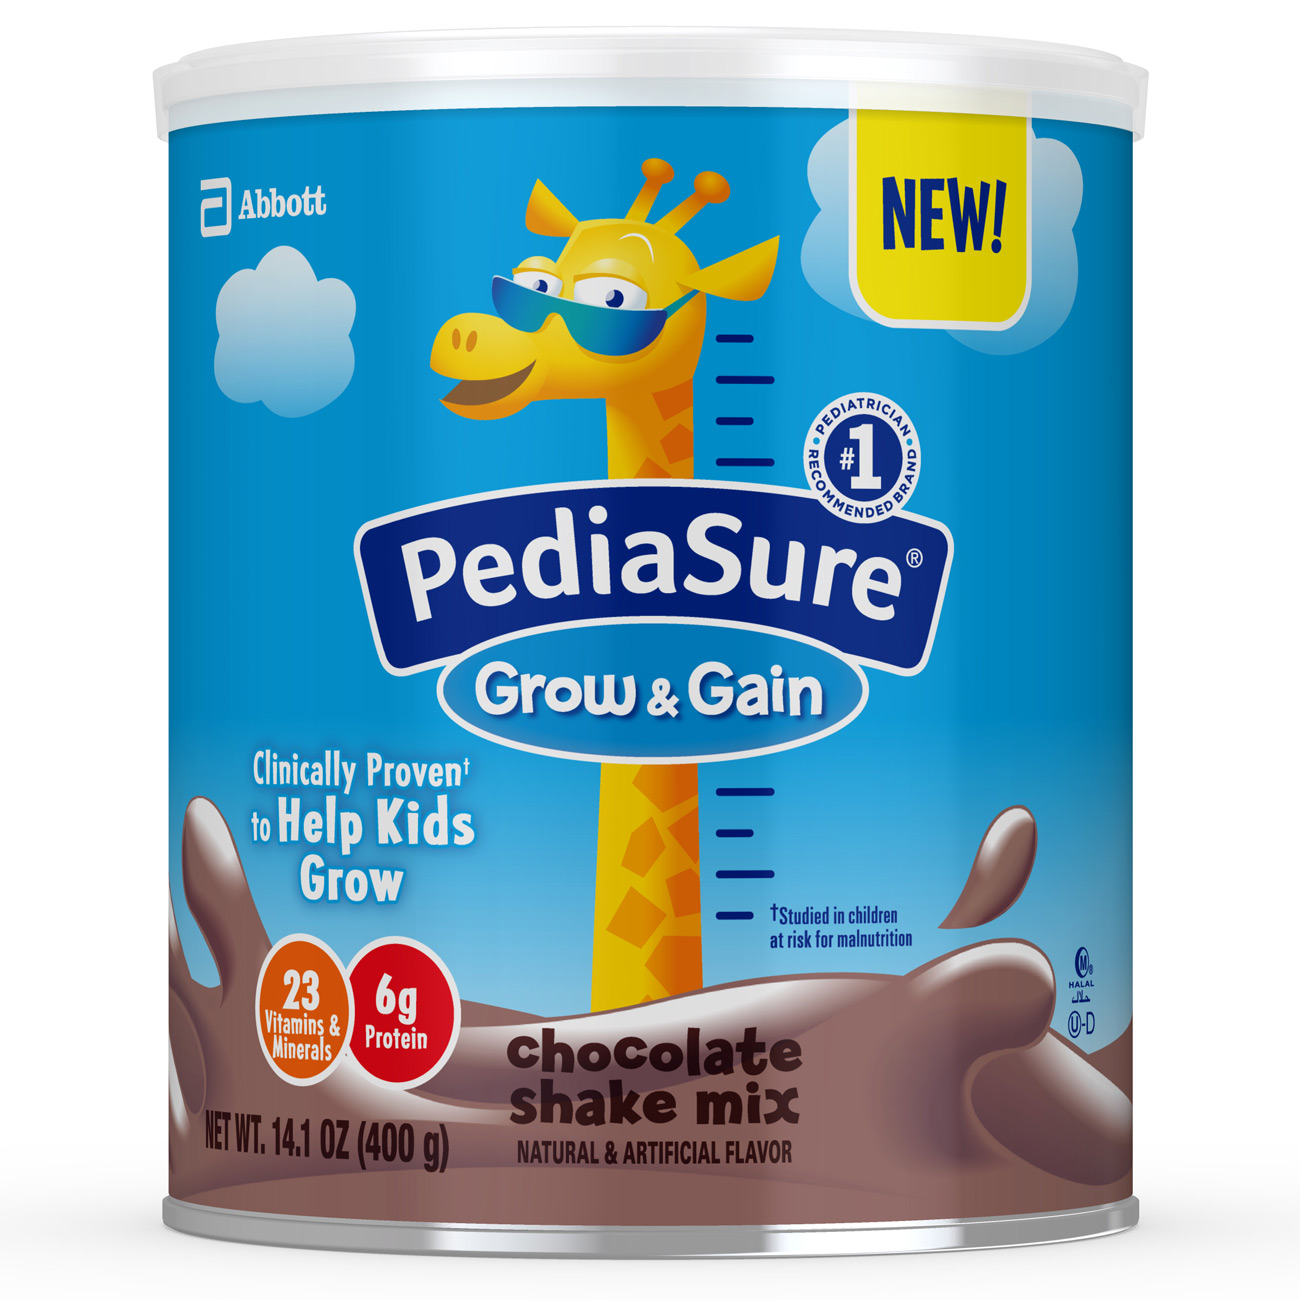 PediaSure Grow & Gain Shake (6 Pack) Powder Chocolate, 14.1 oz